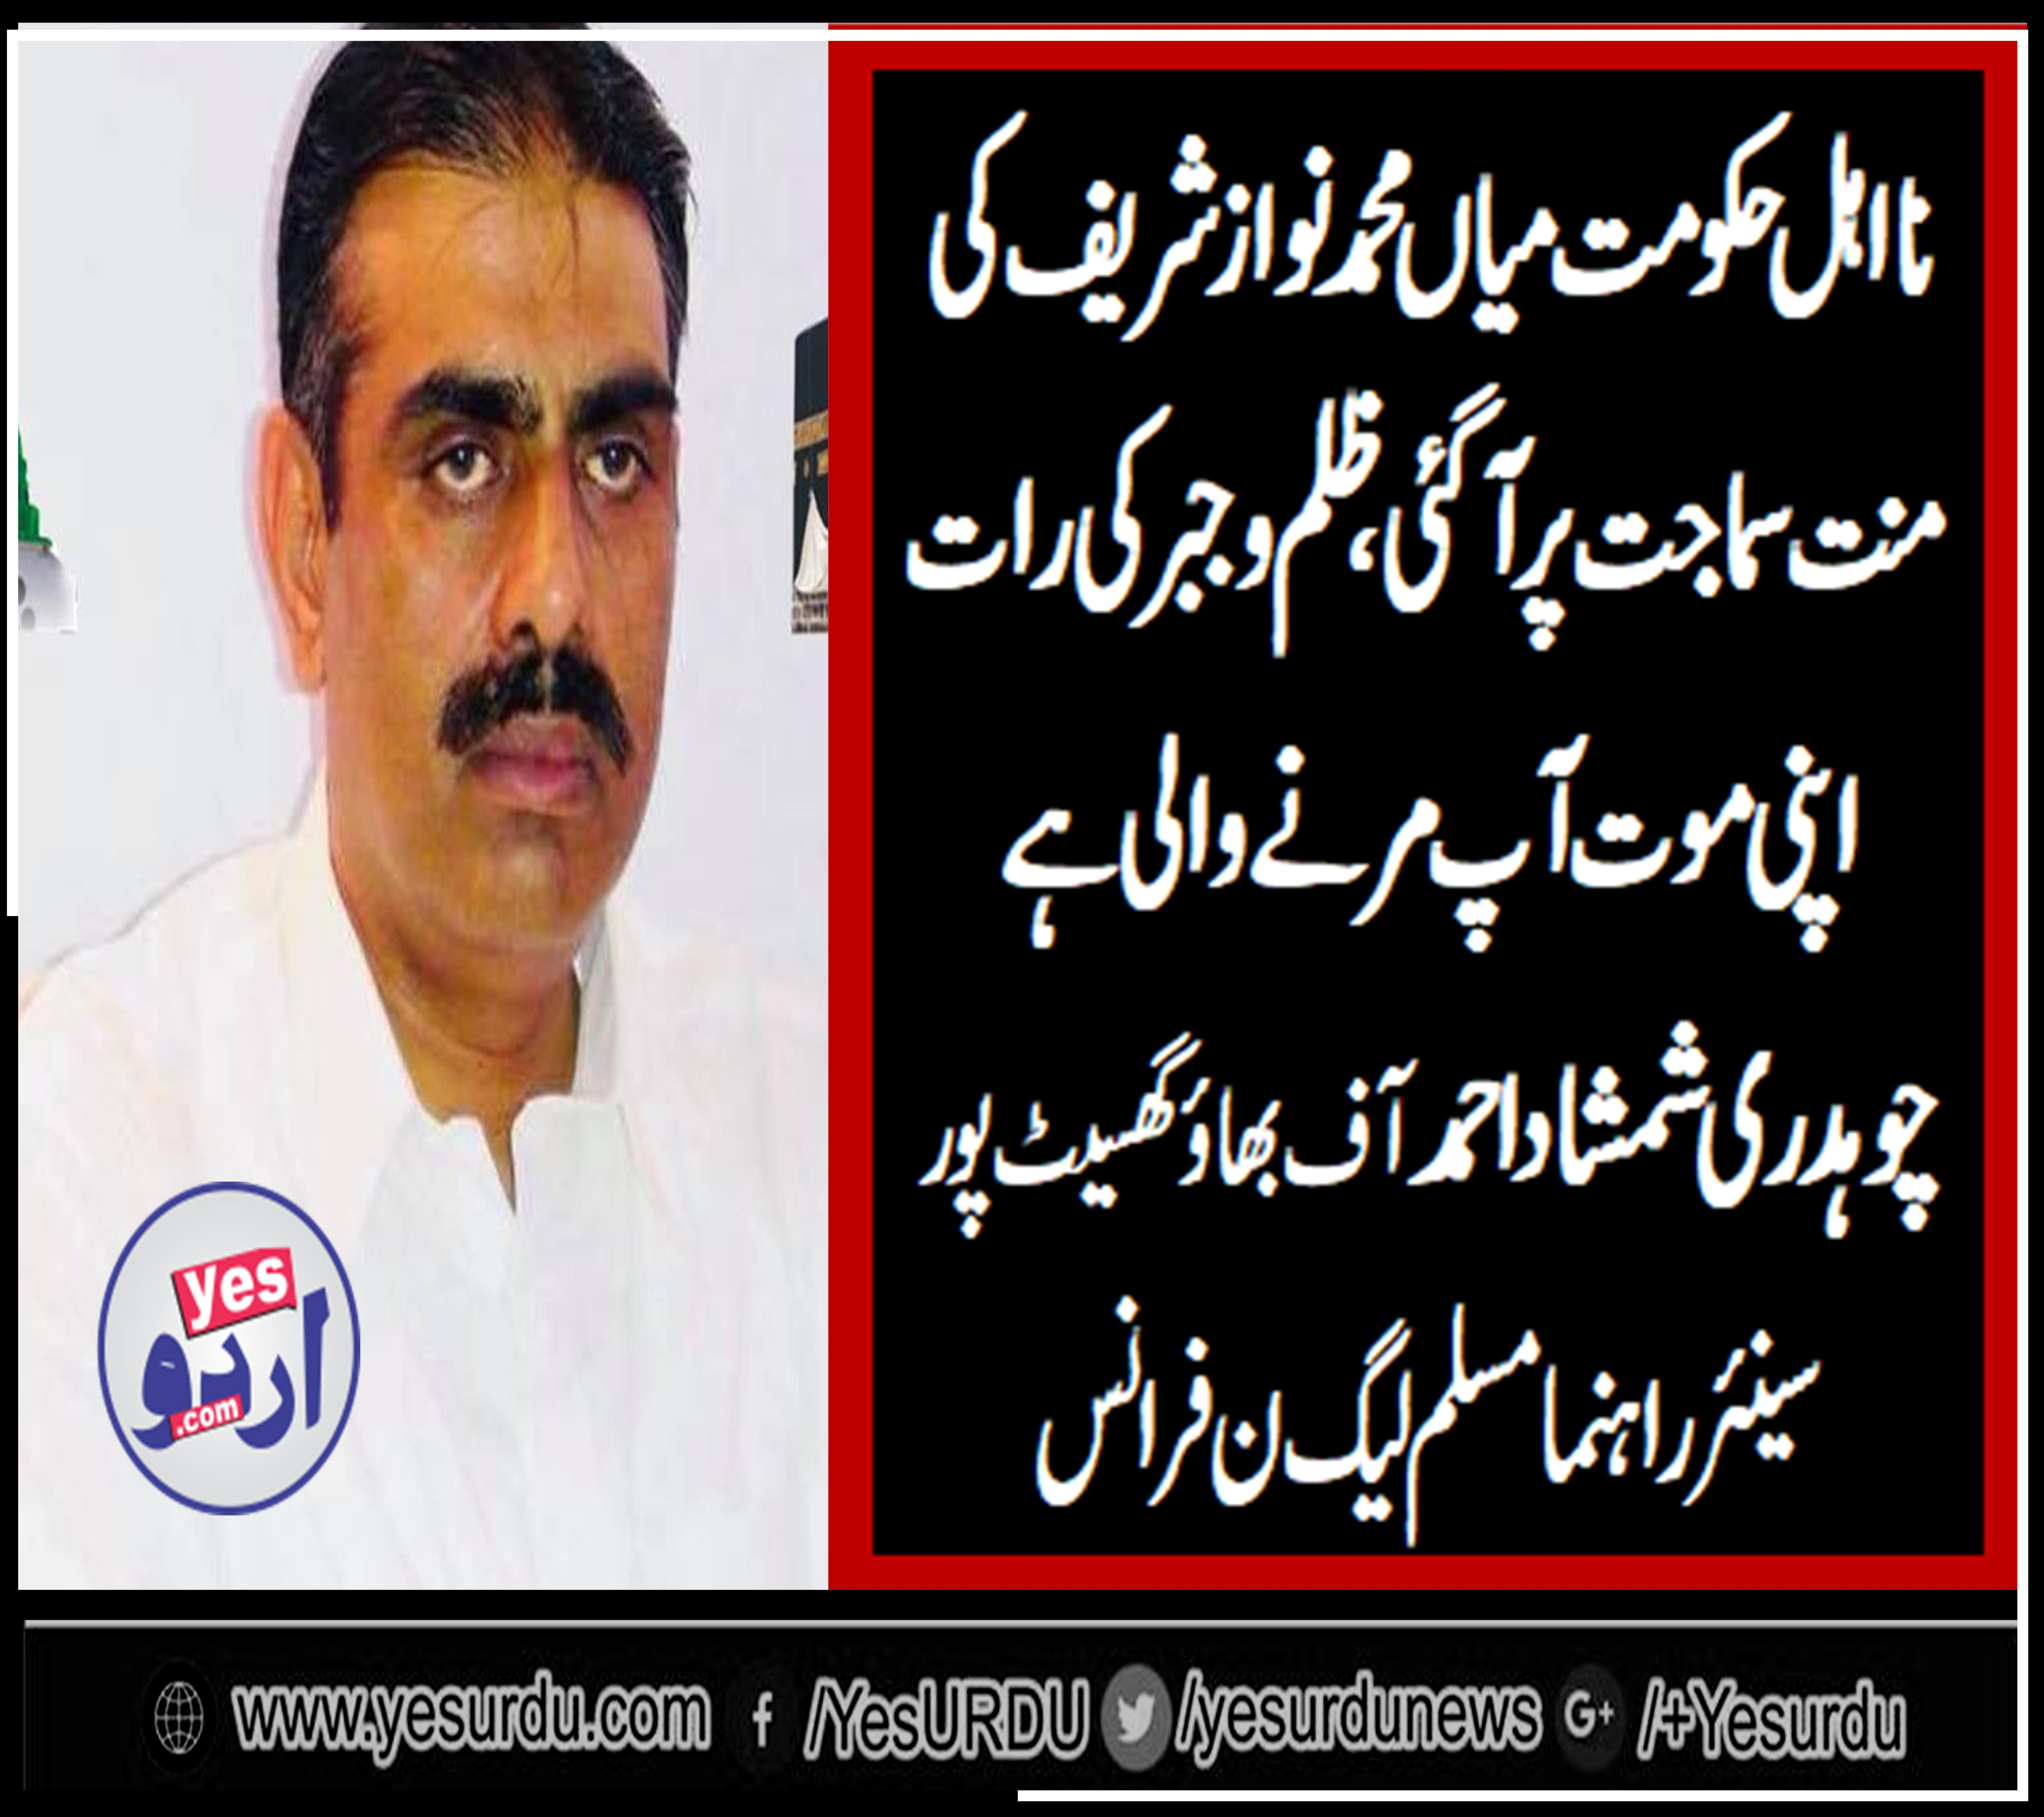 CH SHAMSHAS AHMED, OF, BHAO, GHASEET PUR, SENIOR, LEADER, PMLN, FRANCE, SAYS, GOVT, IS, BEGGING, BEFORE, NAWAZ SHARIEF,